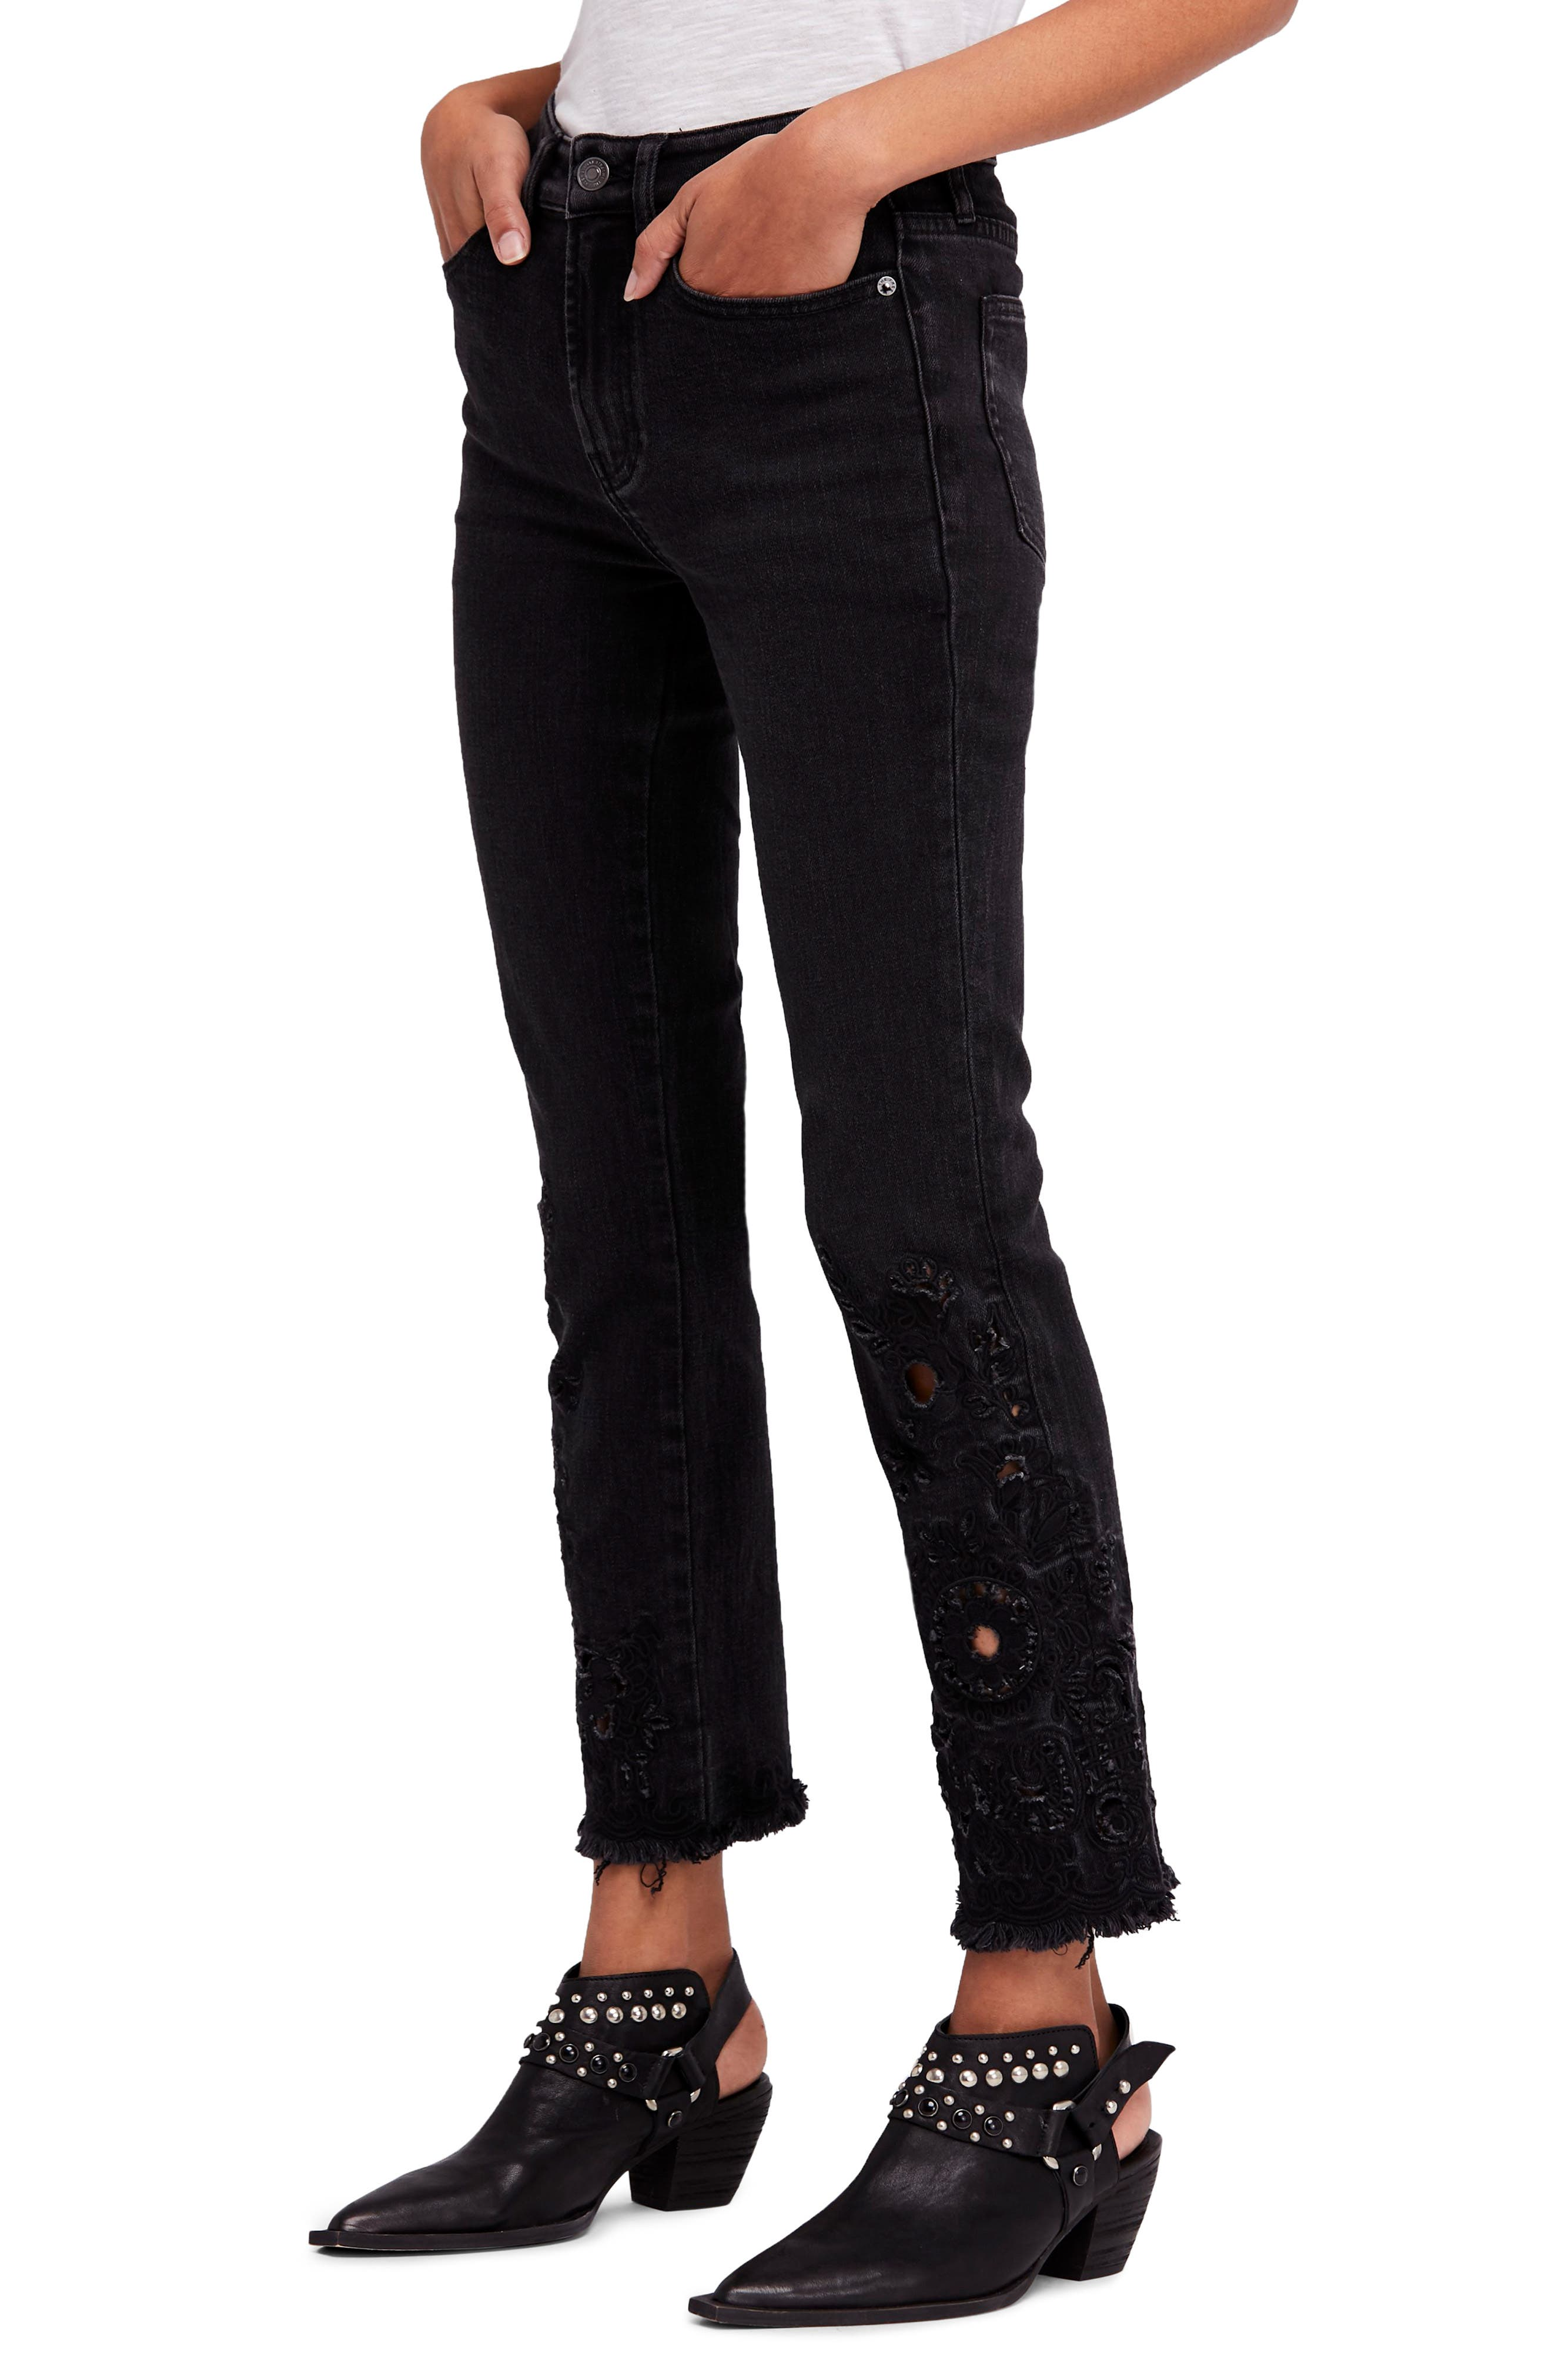 Cutwork Cigarette Jeans,                         Main,                         color, Black